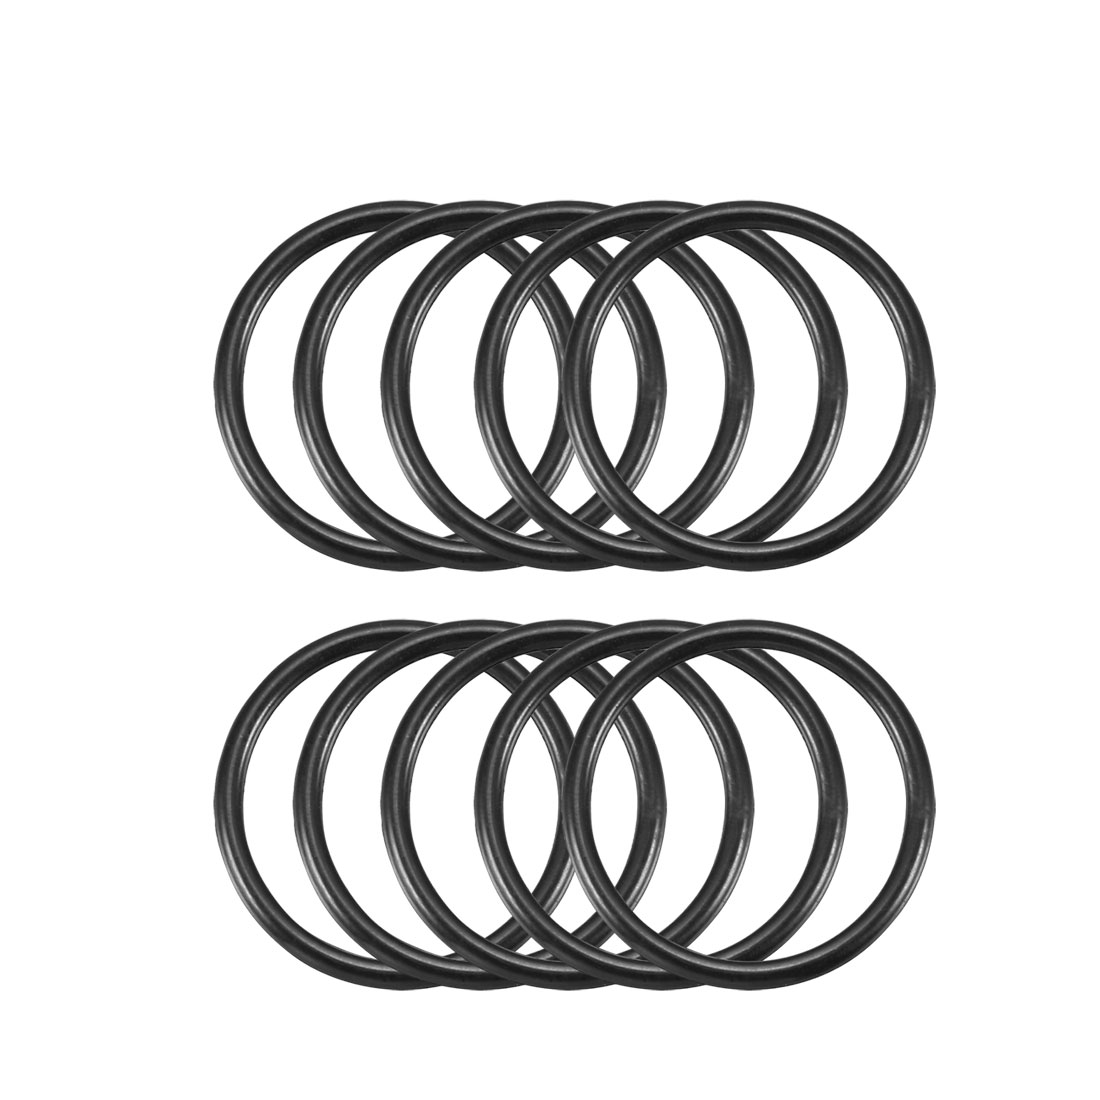 10 Pcs Black Rubber Oil Sealing O Ring Gasket Washer 19mm x 16mm x 1.5mm